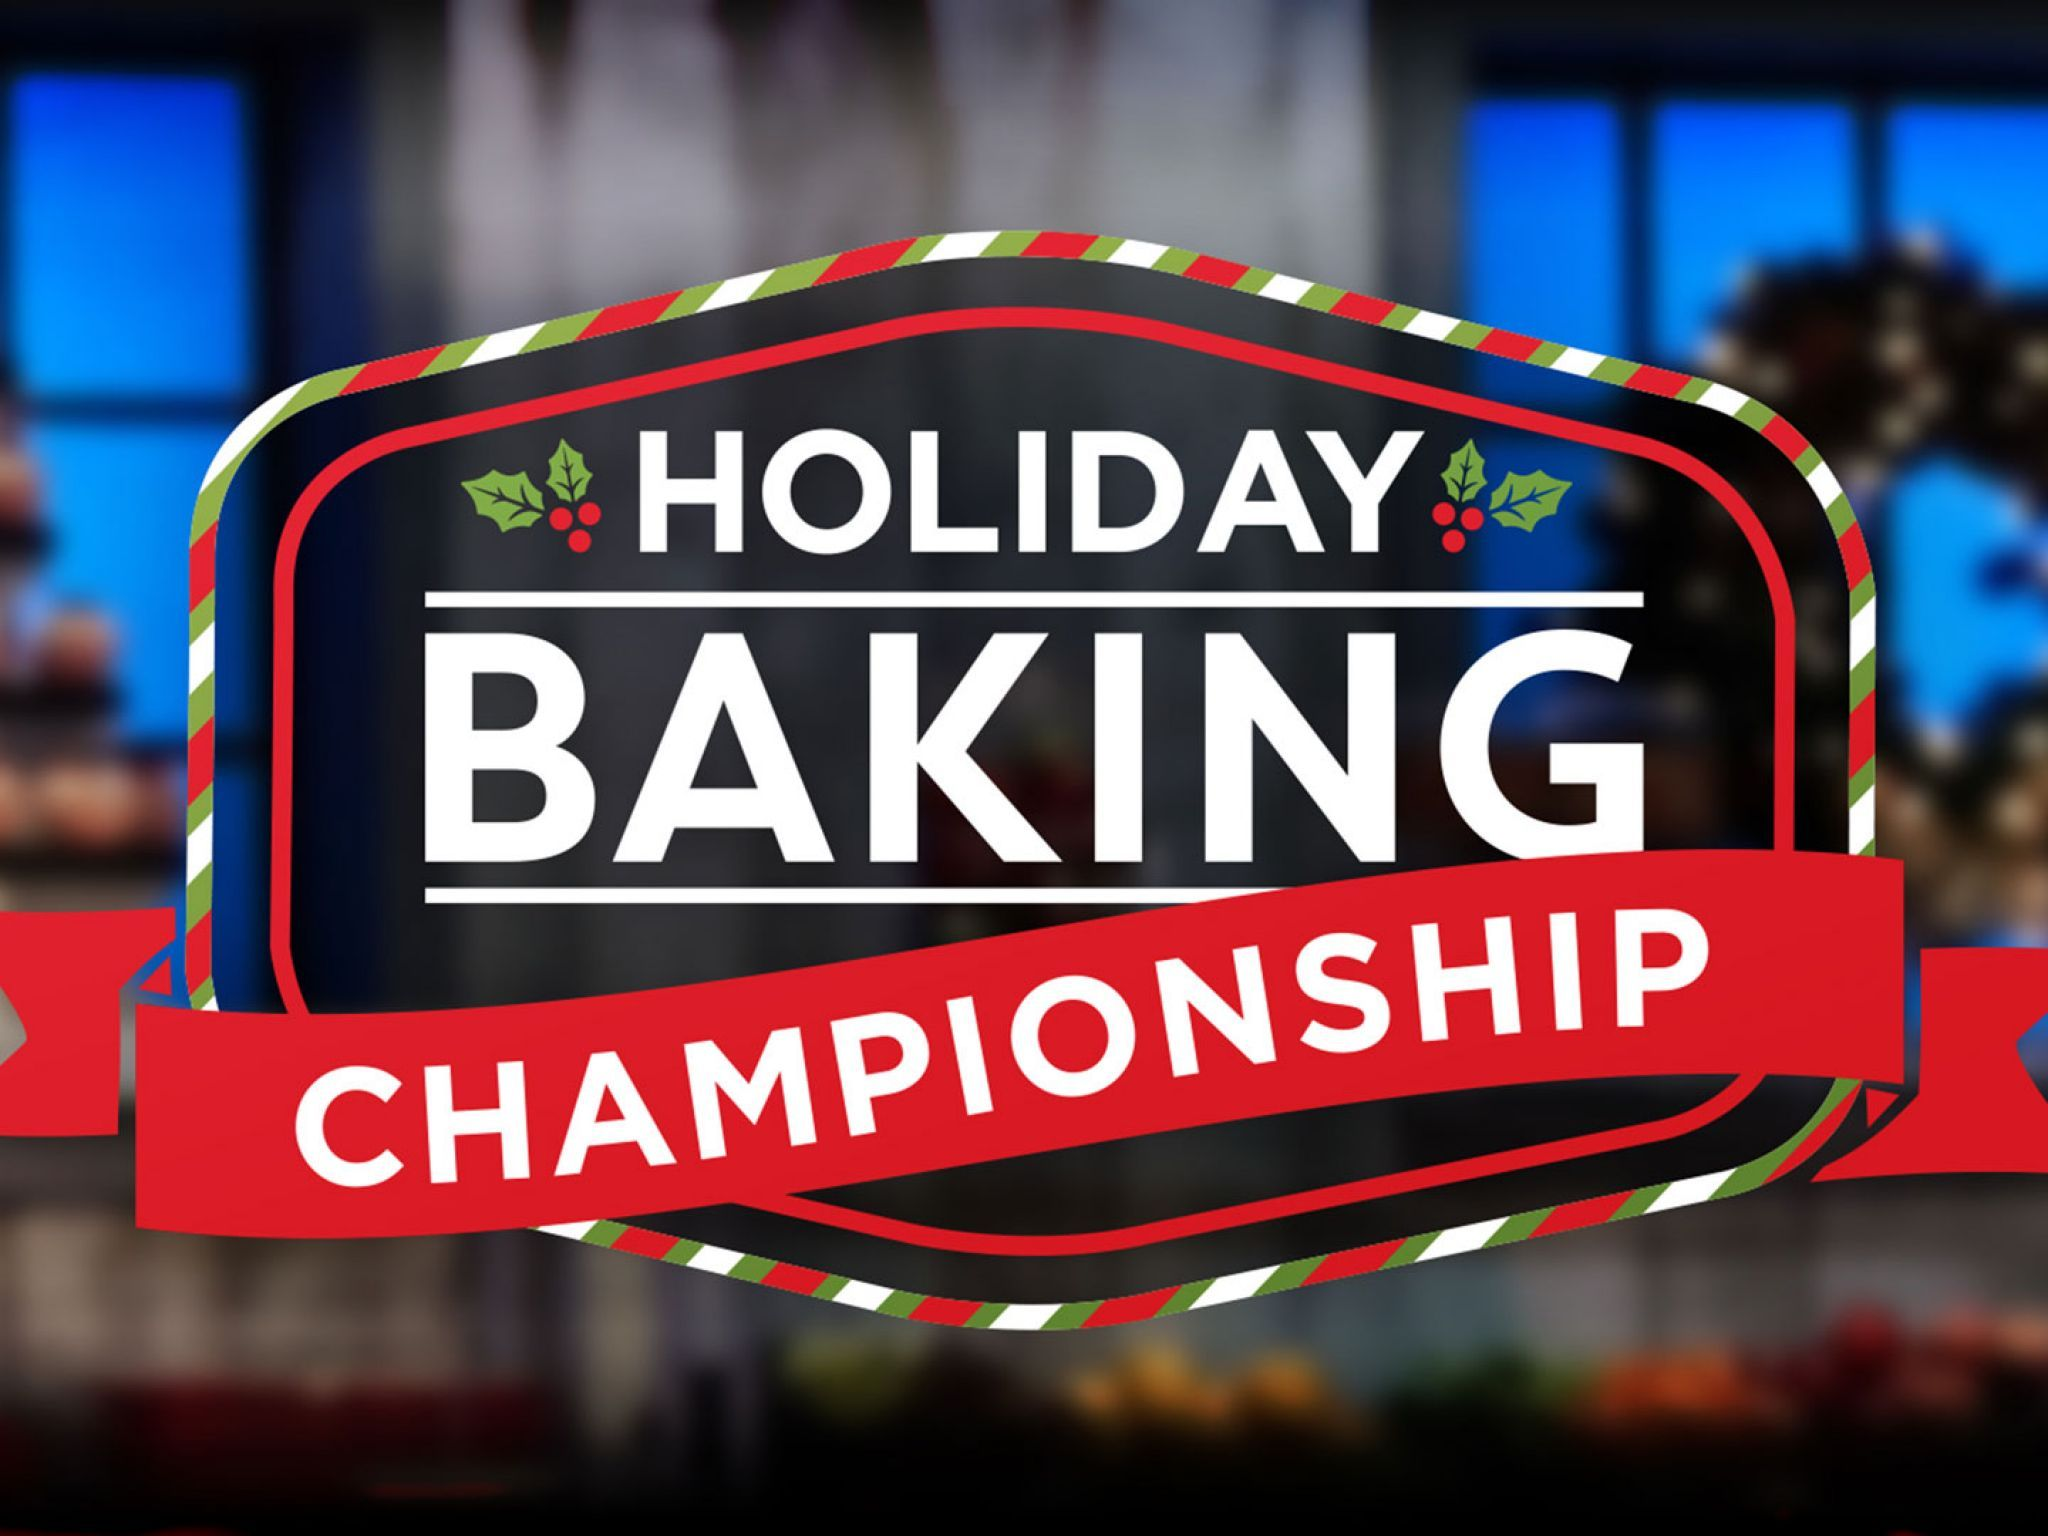 Get Cast How to Be on Holiday baking championship